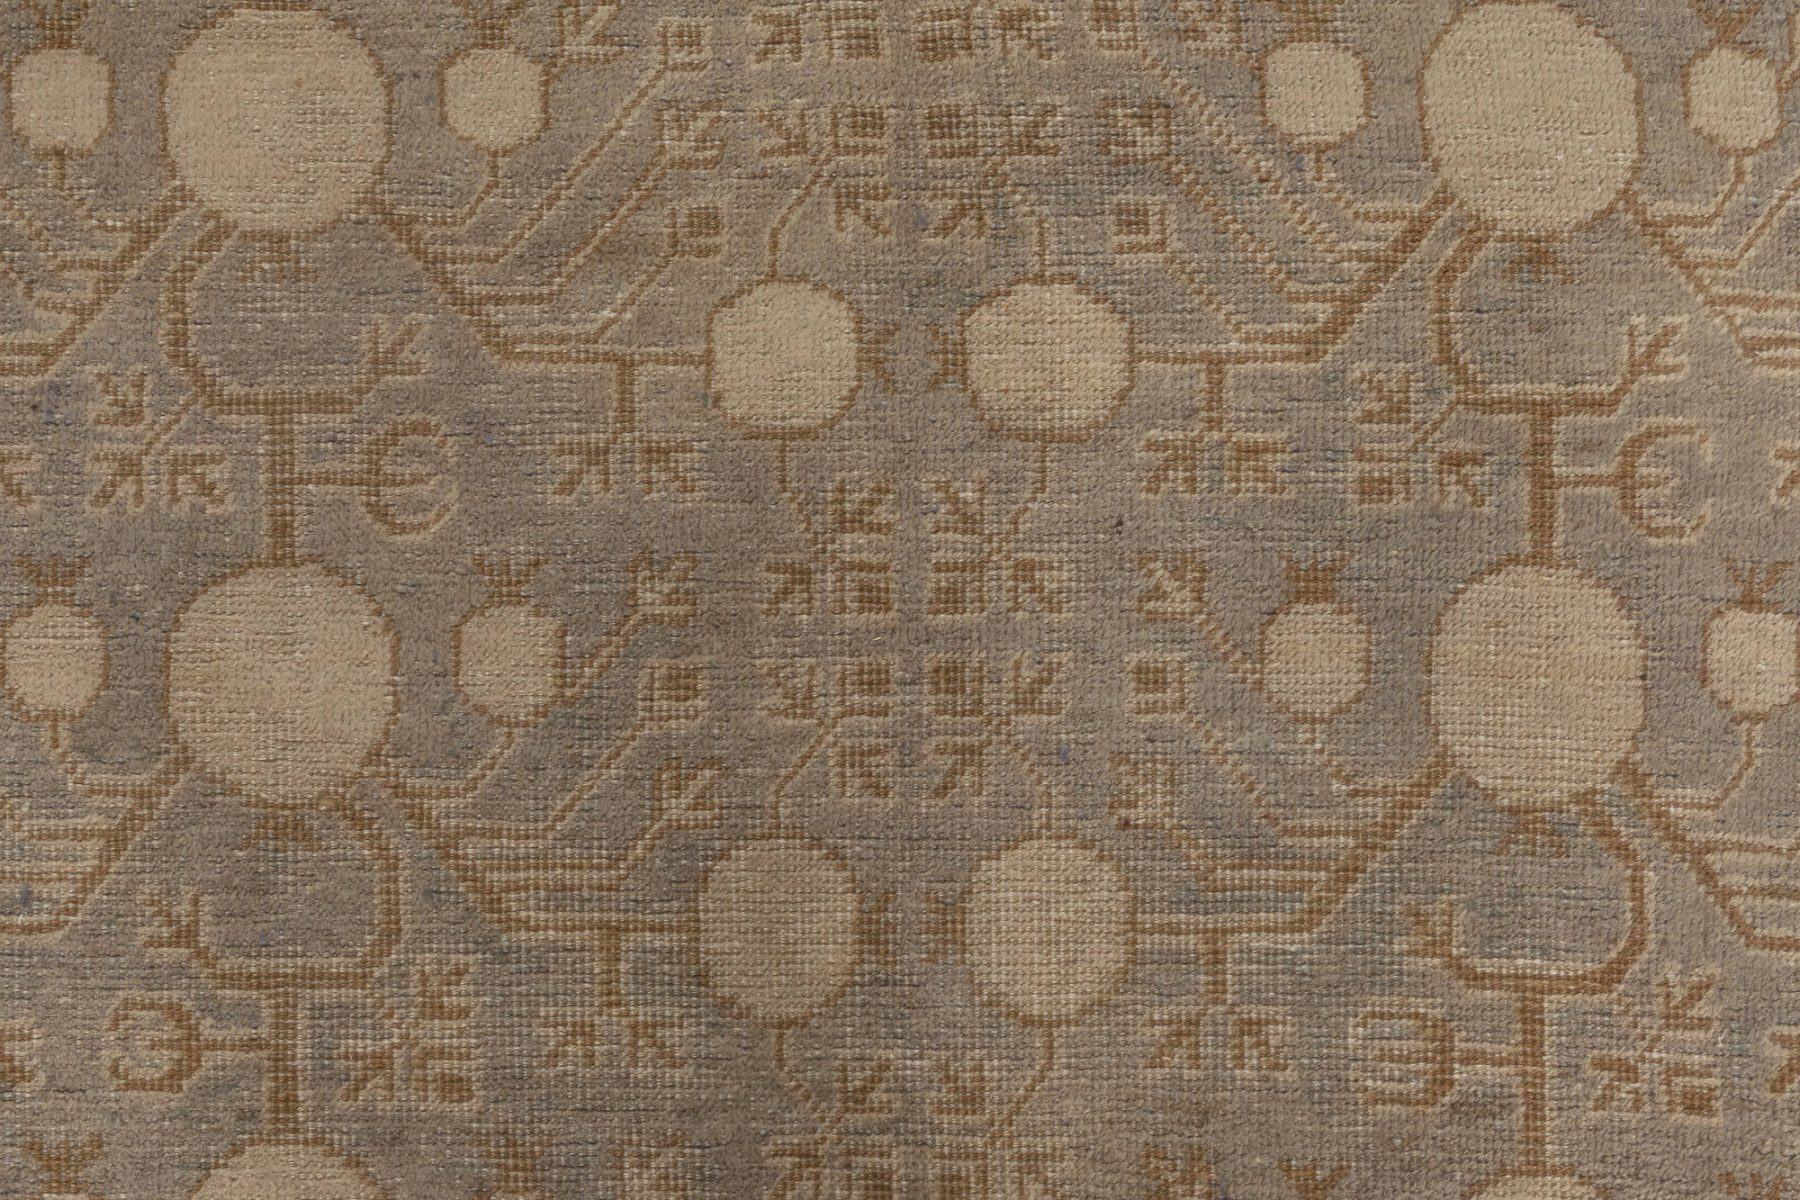 Midcentury Blue and Brown Samarkand Handwoven Wool Rug BB7008